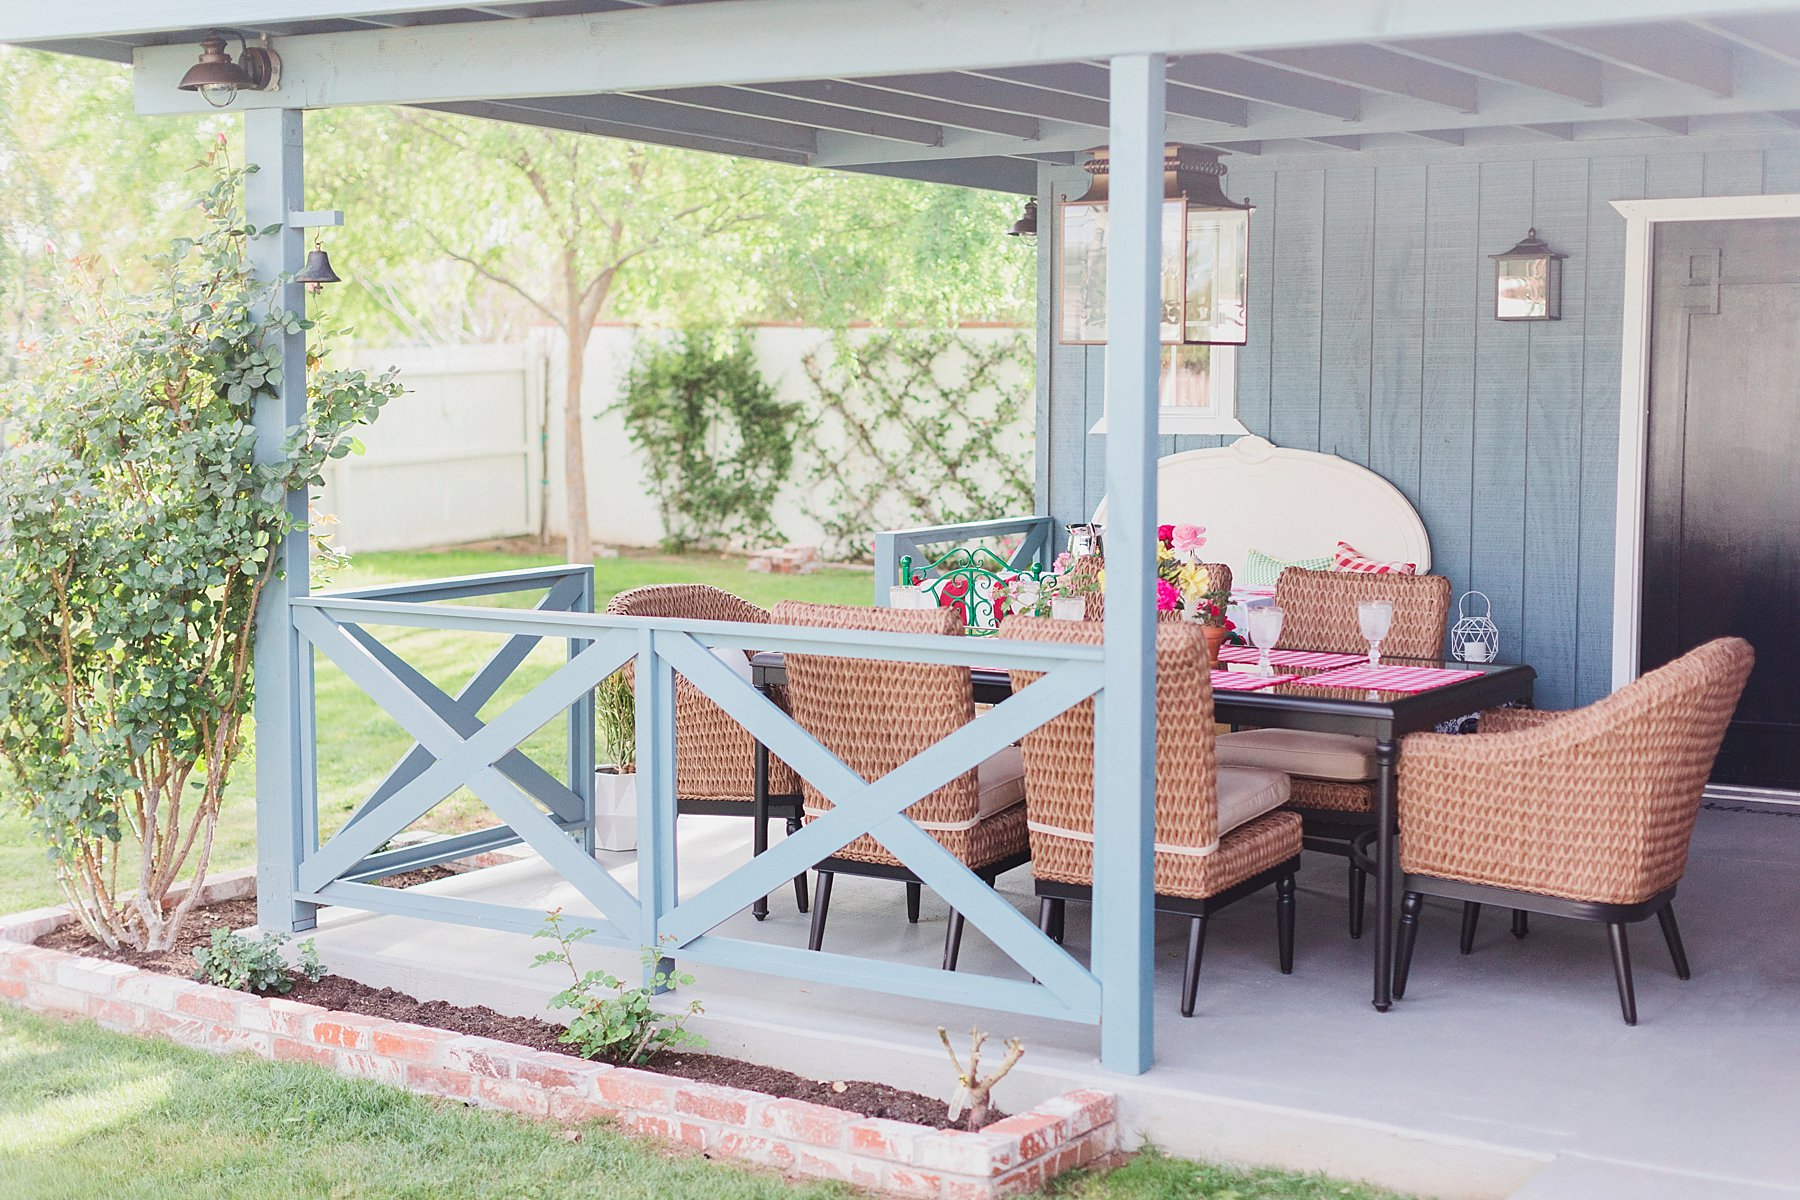 Covered home patio makeover with details